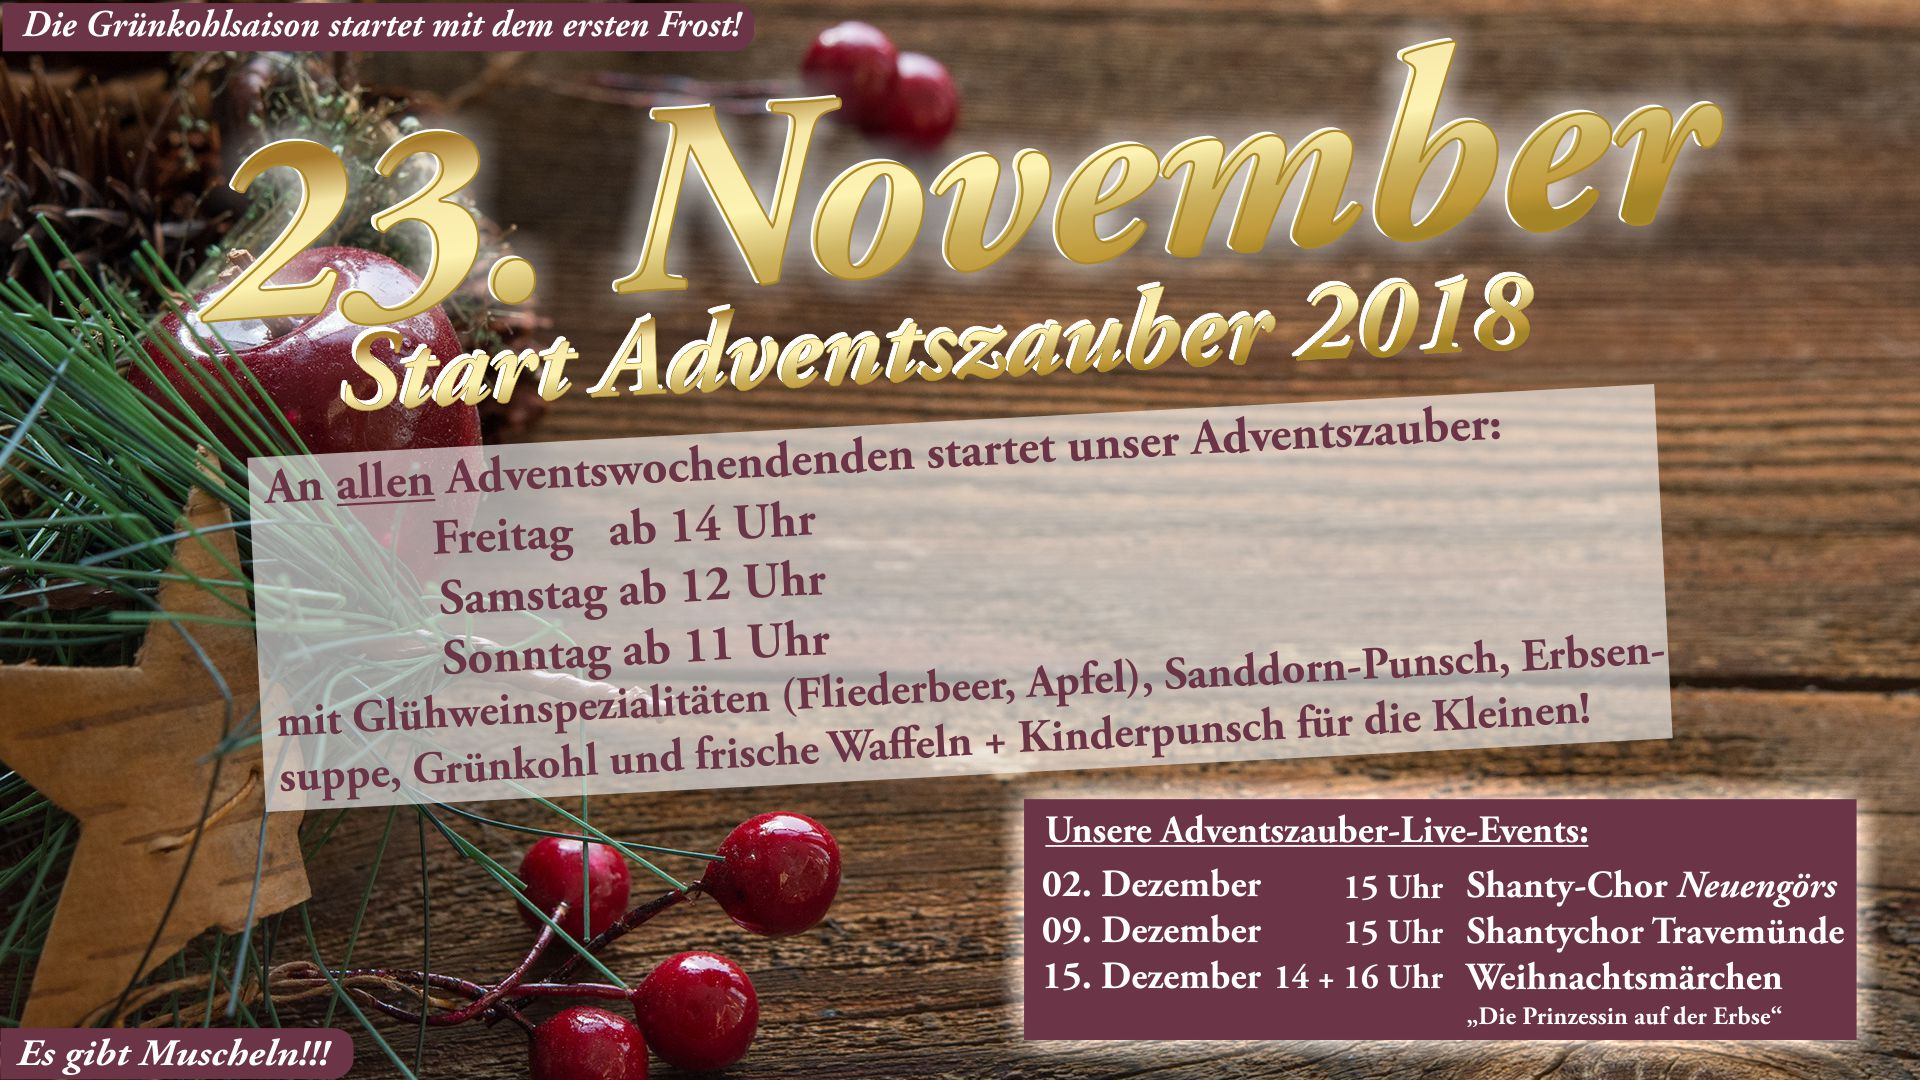 Der Adventszauber startet am 23. November!